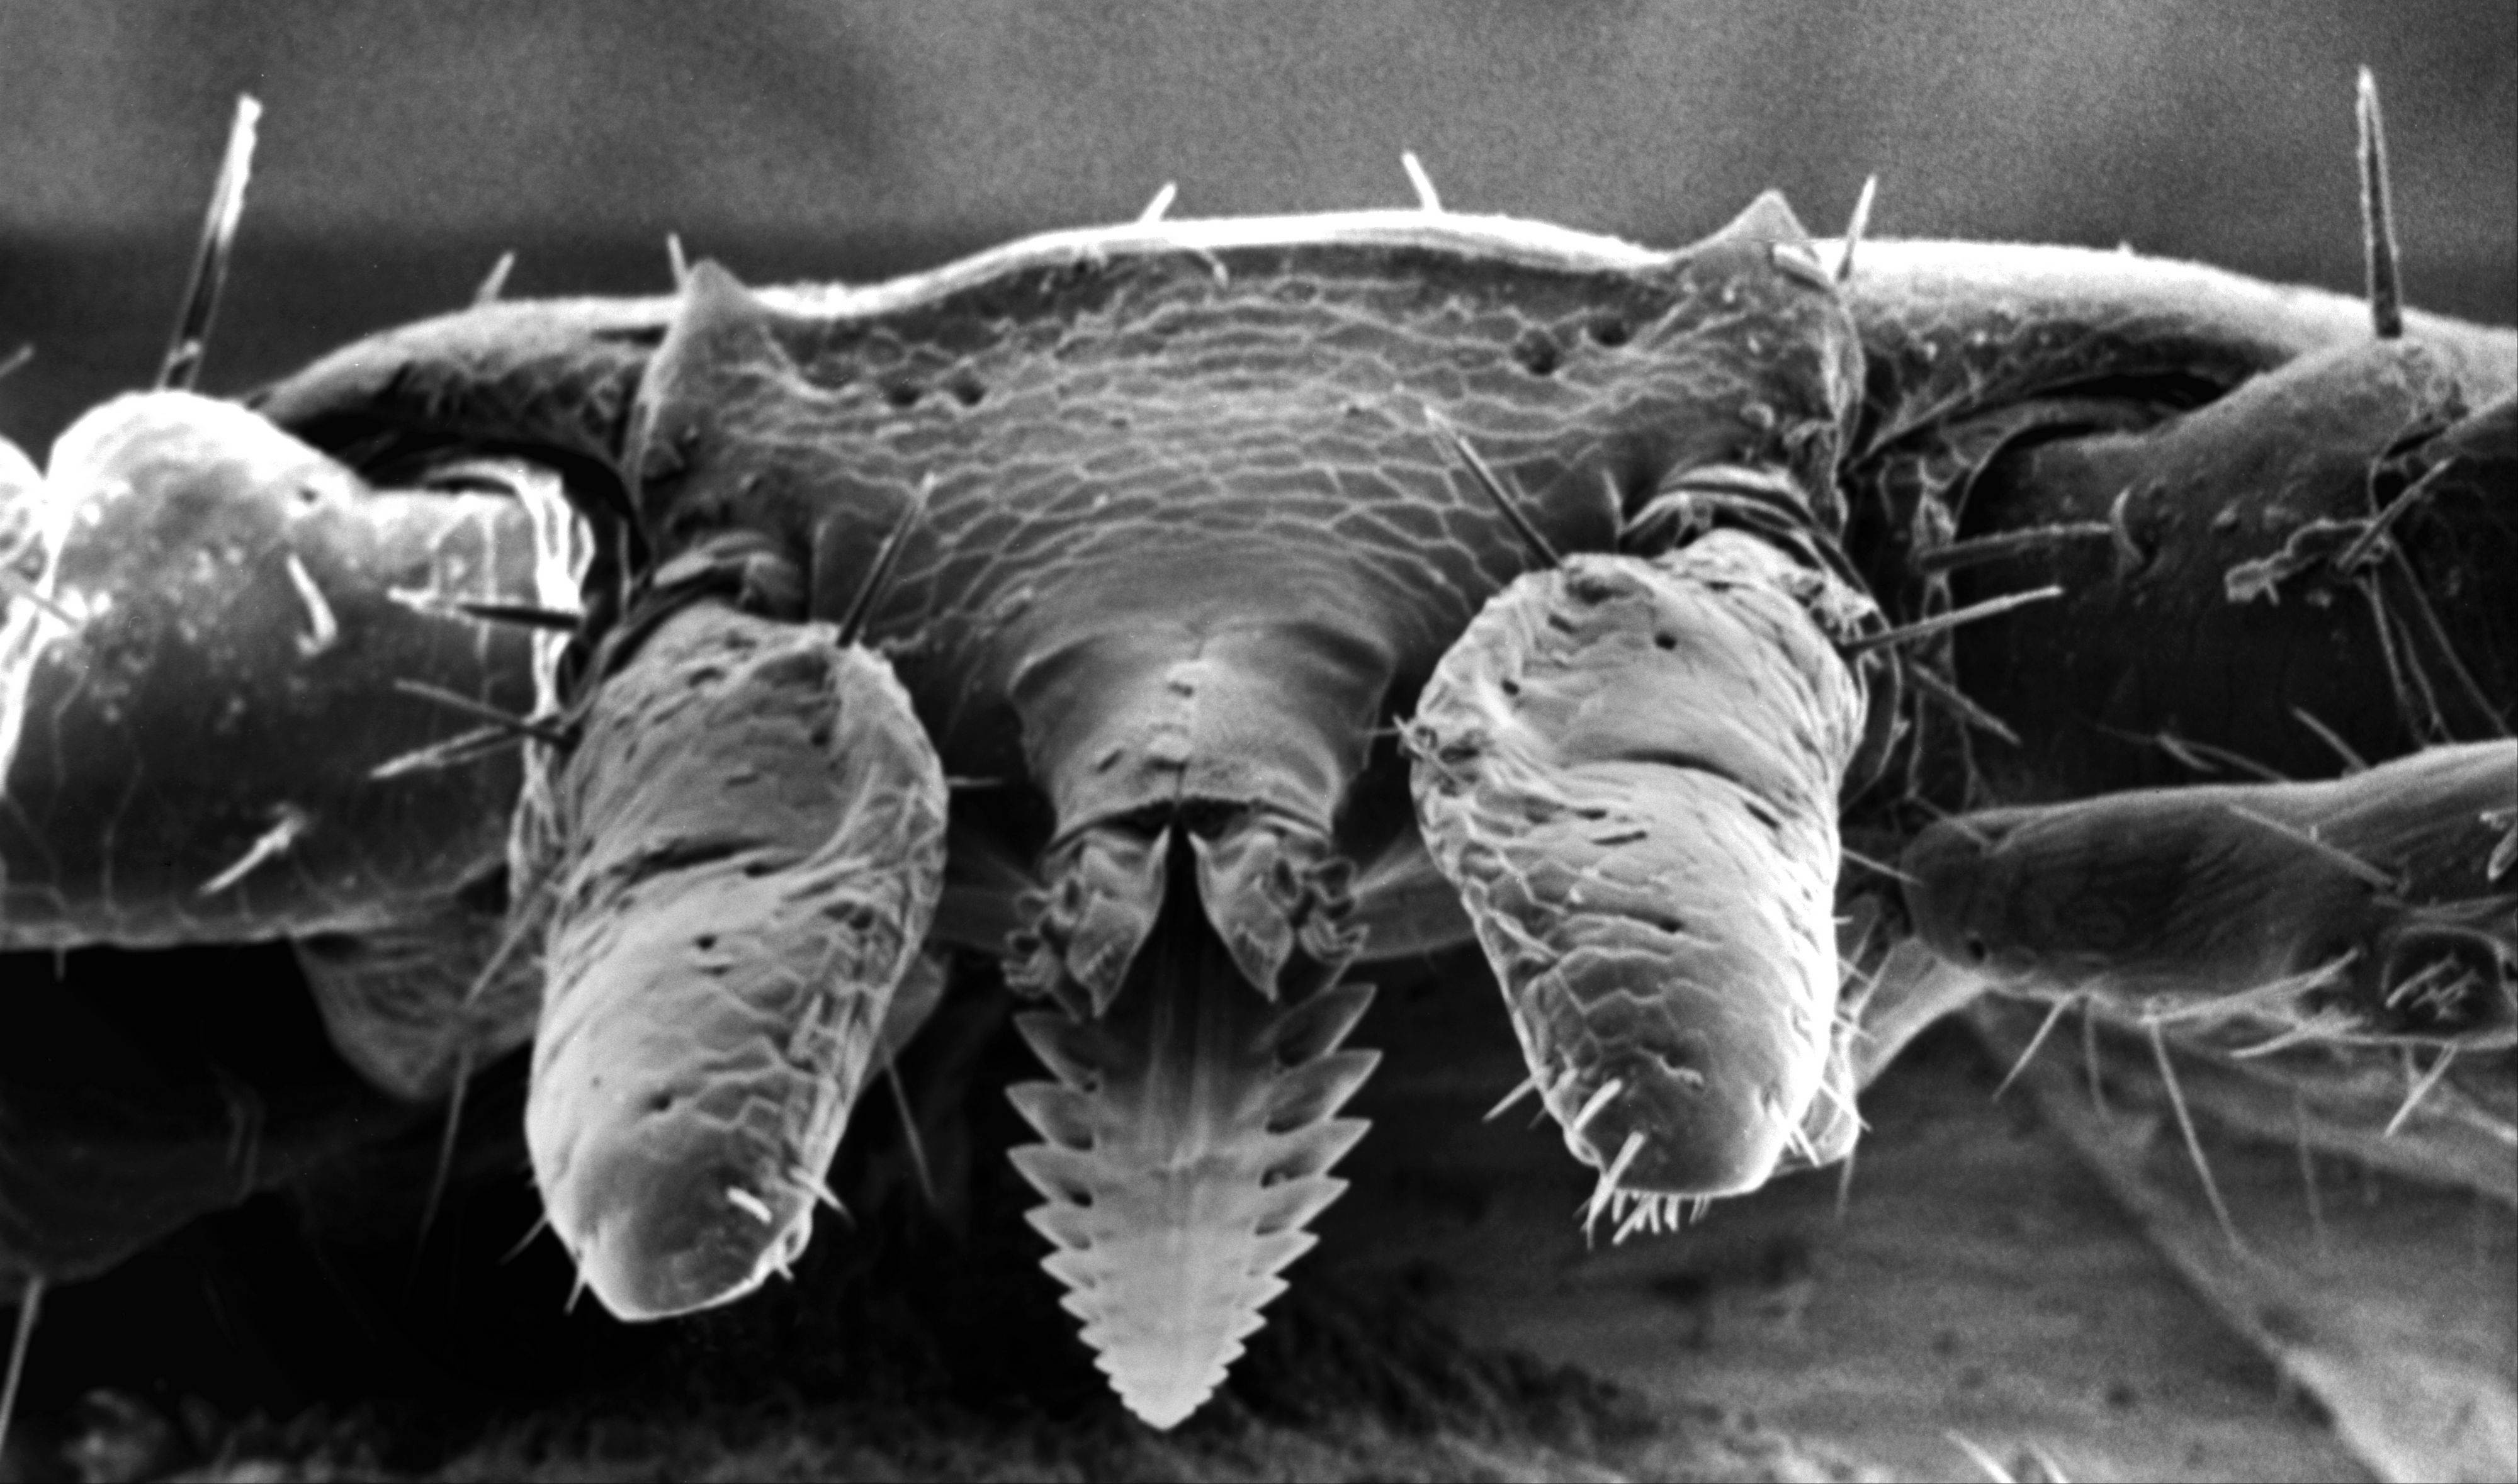 A deer tick magnified under an electron microscope. The ticks carry the bacteria for Lyme disease, and can transmit it to dogs (and humans).